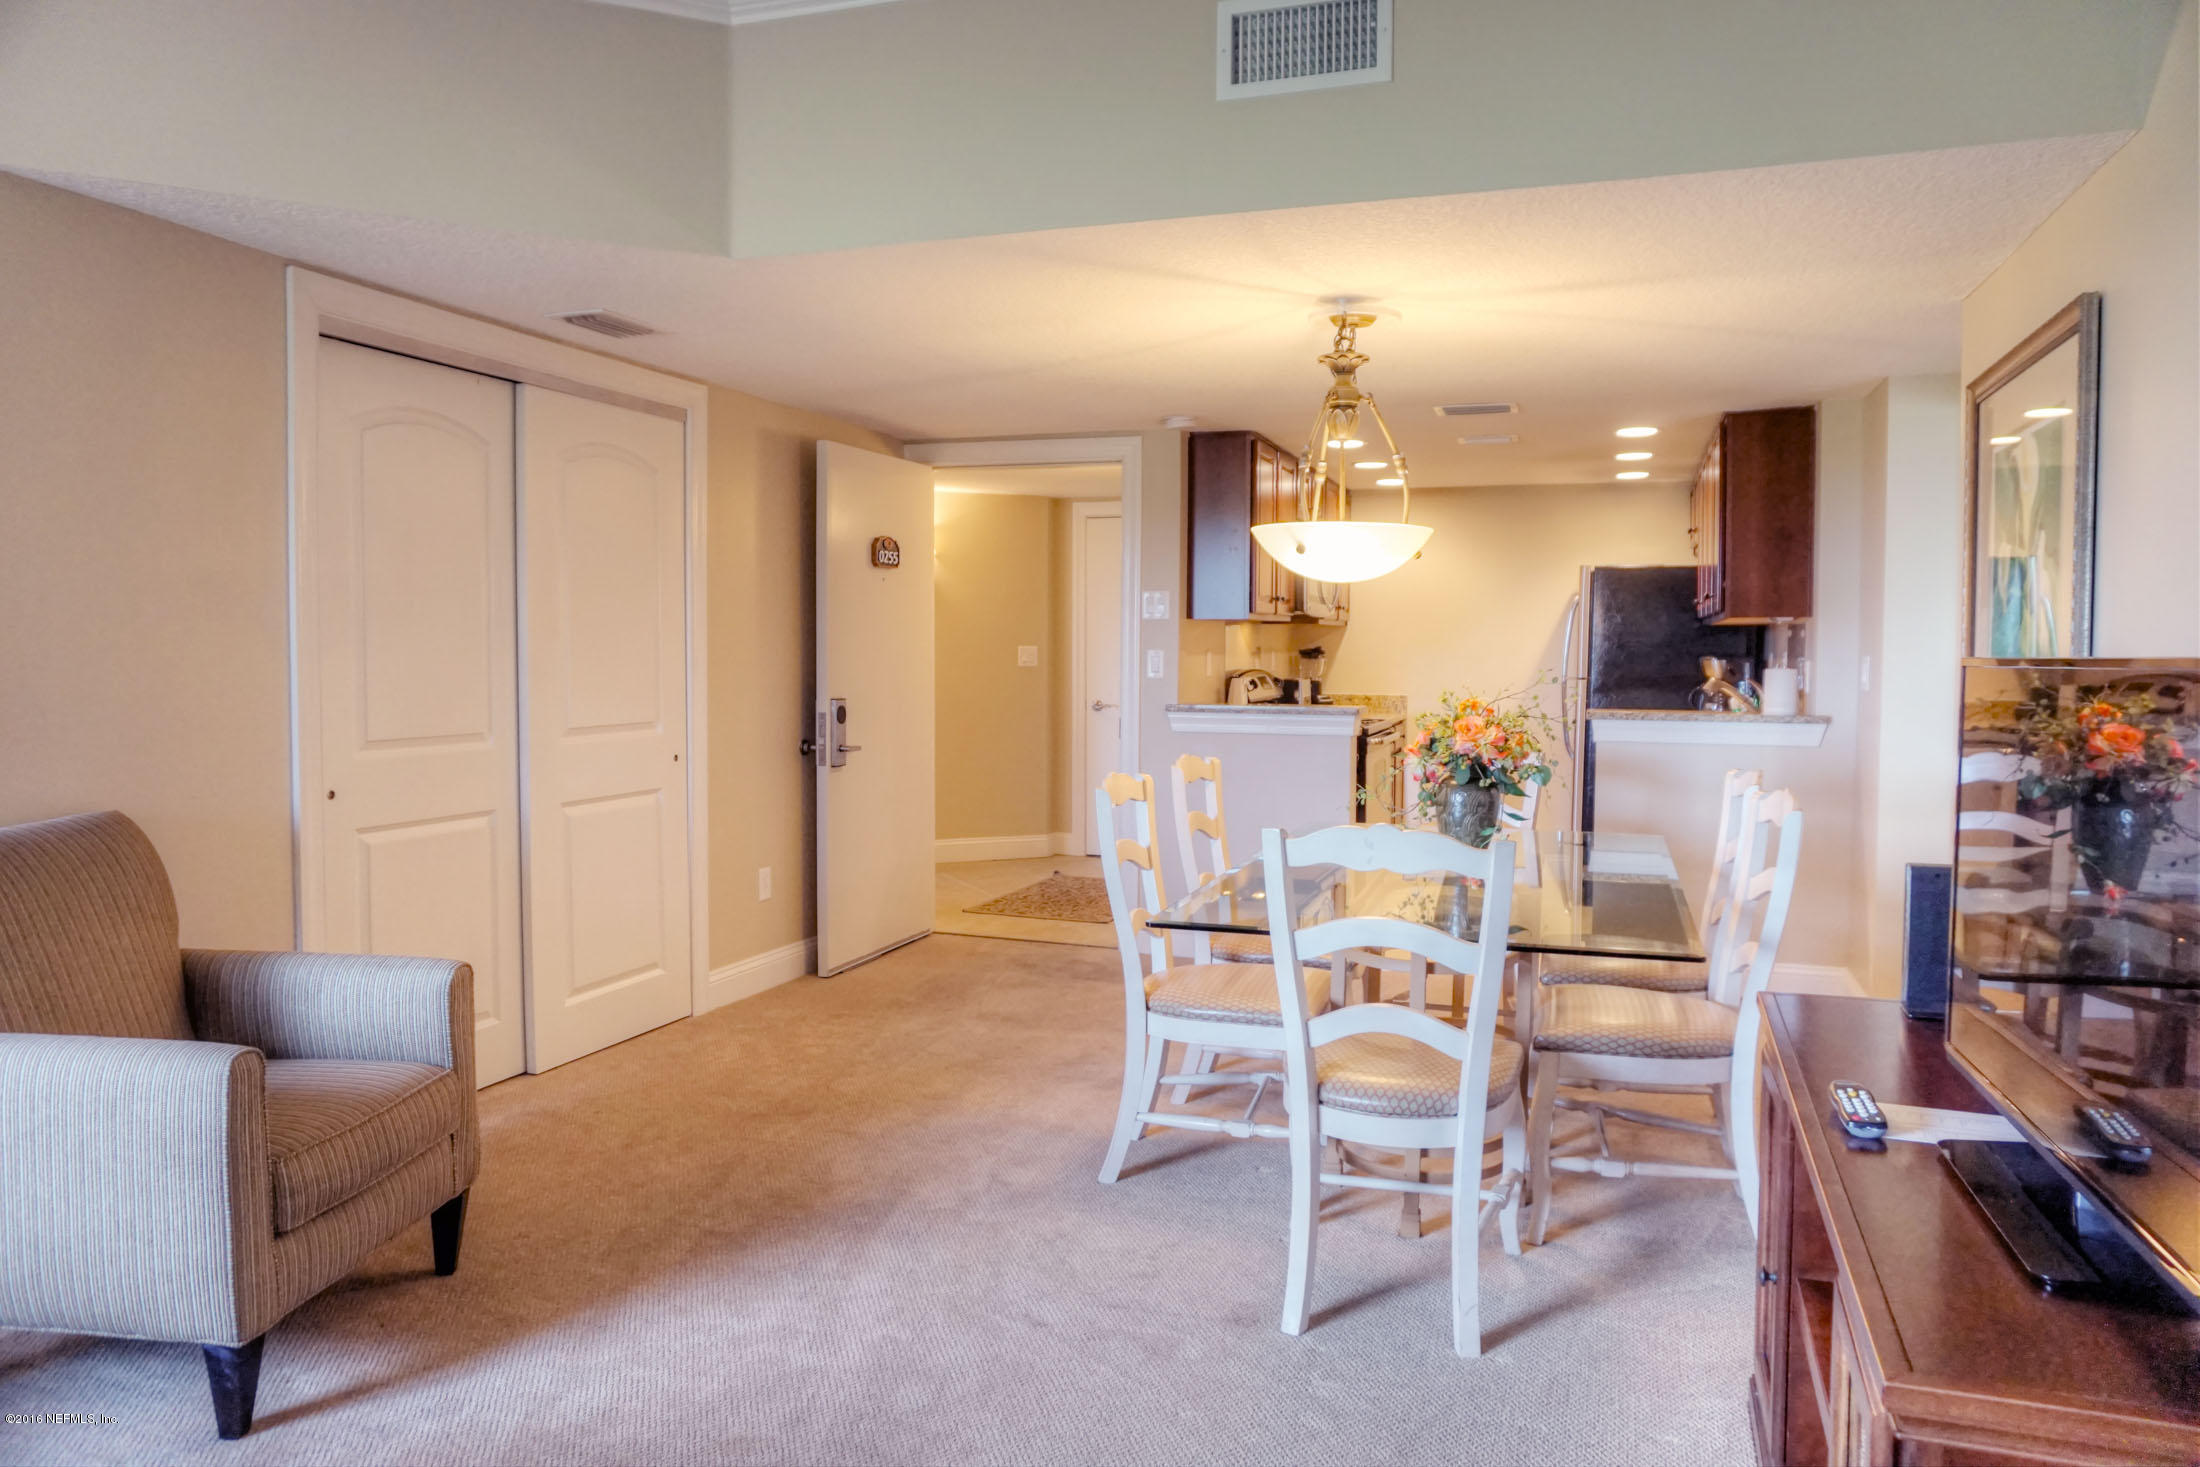 255/256 SANDCASTLES, FERNANDINA BEACH, FLORIDA 32034, 2 Bedrooms Bedrooms, ,2 BathroomsBathrooms,Condo,For sale,SANDCASTLES,1018197